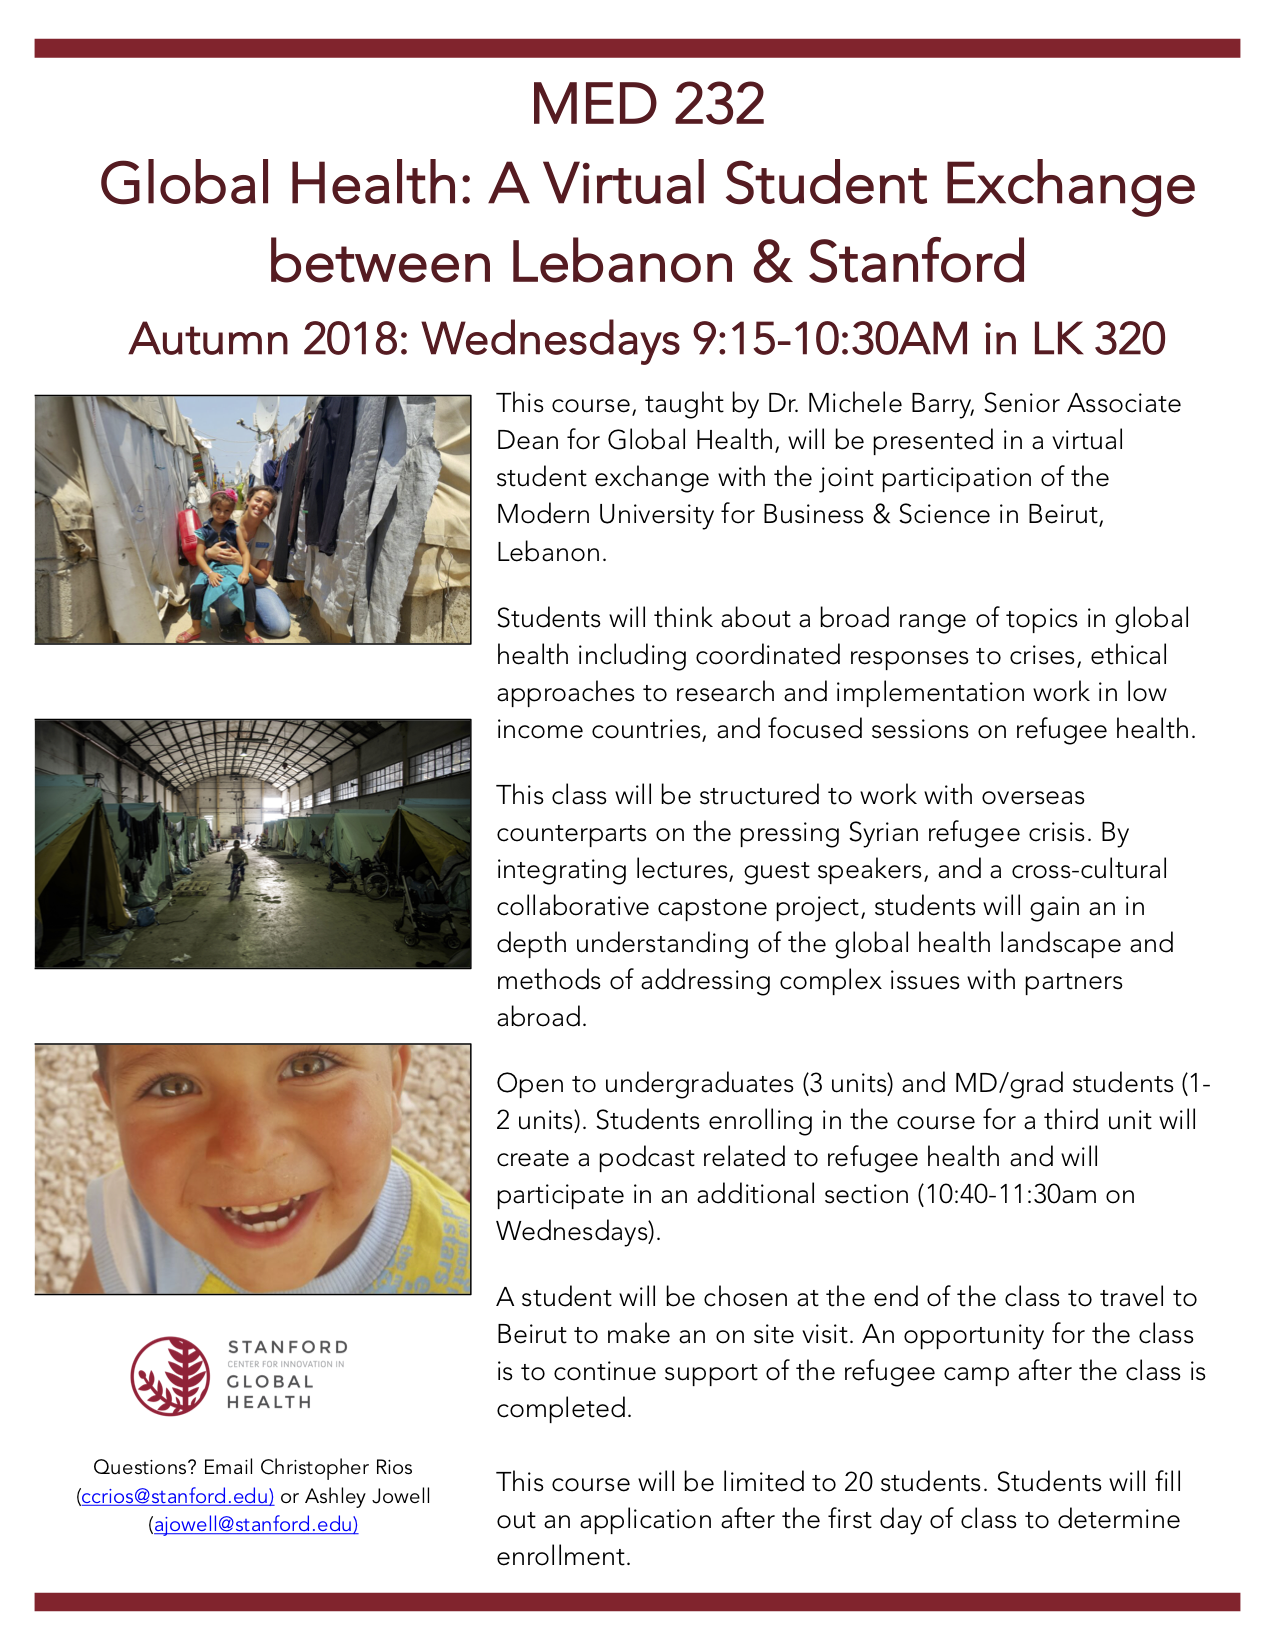 Refugee Course - Stanford students work in partnership with students in Lebanon (MUBS) and local NGOs to help meet the needs of a refugee community in Beka'a Valley, Lebanon.